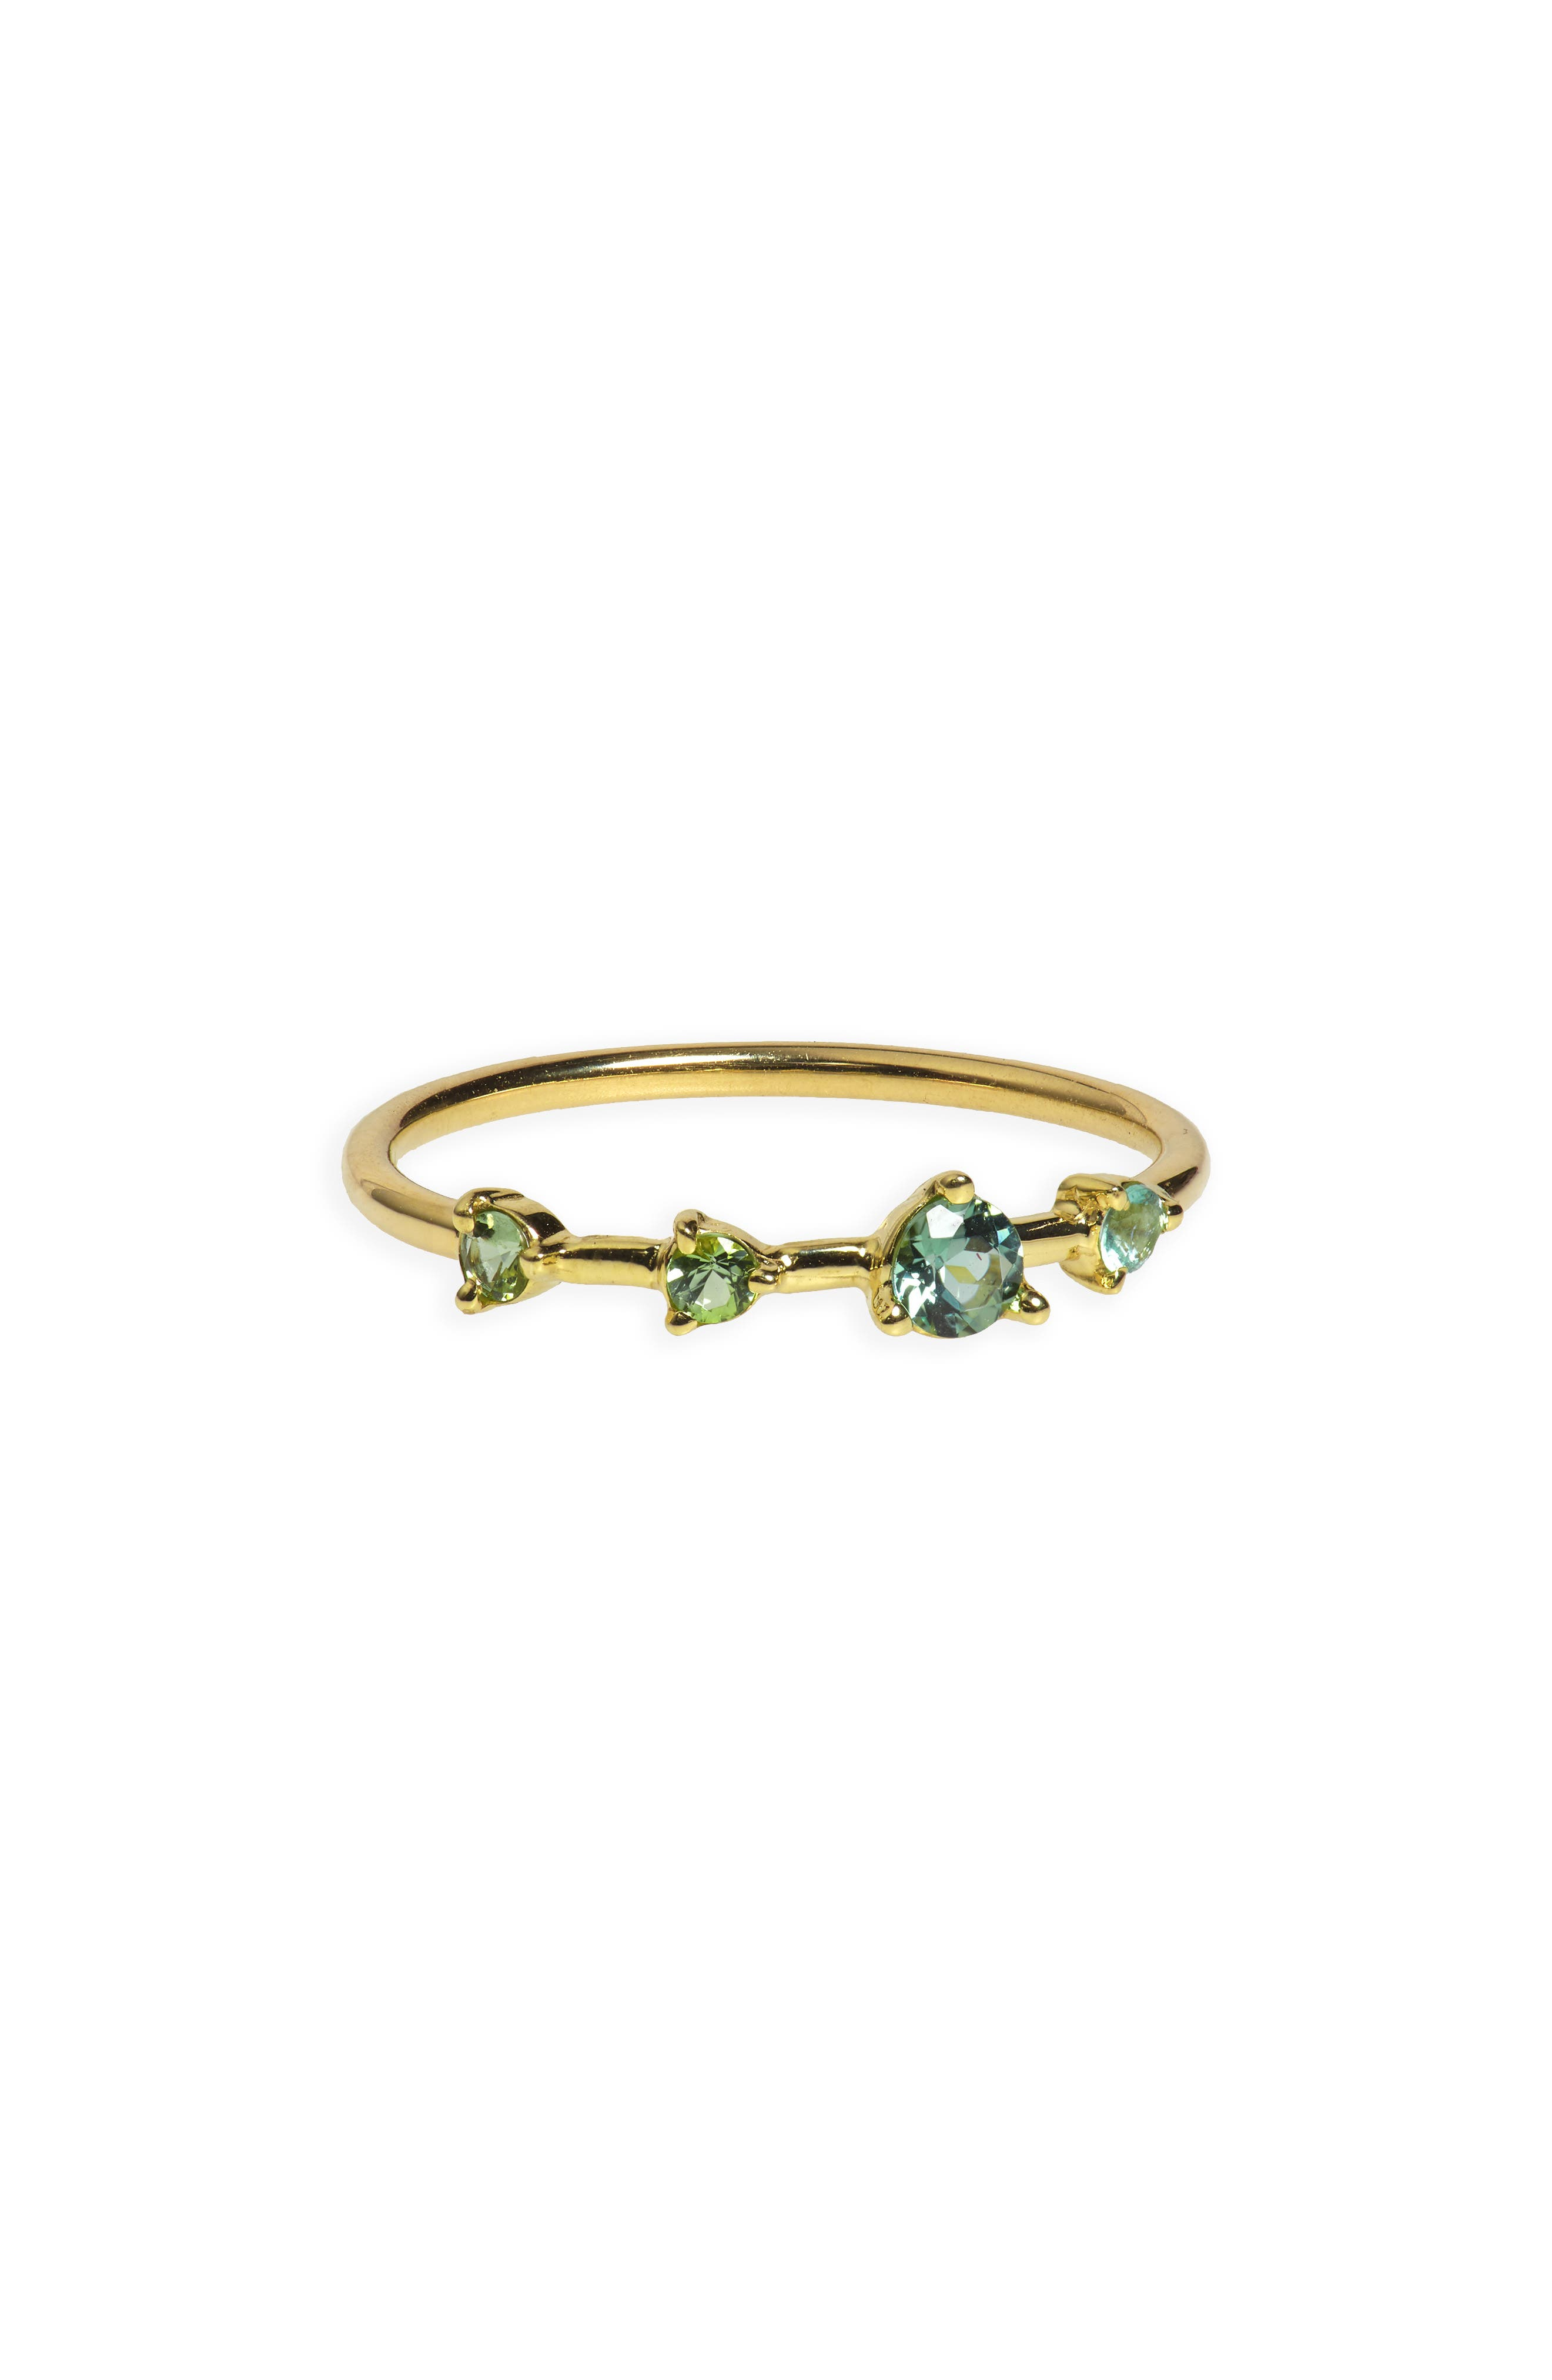 Counting Collection Four-Step Ring,                             Main thumbnail 1, color,                             GOLD/ GREEN